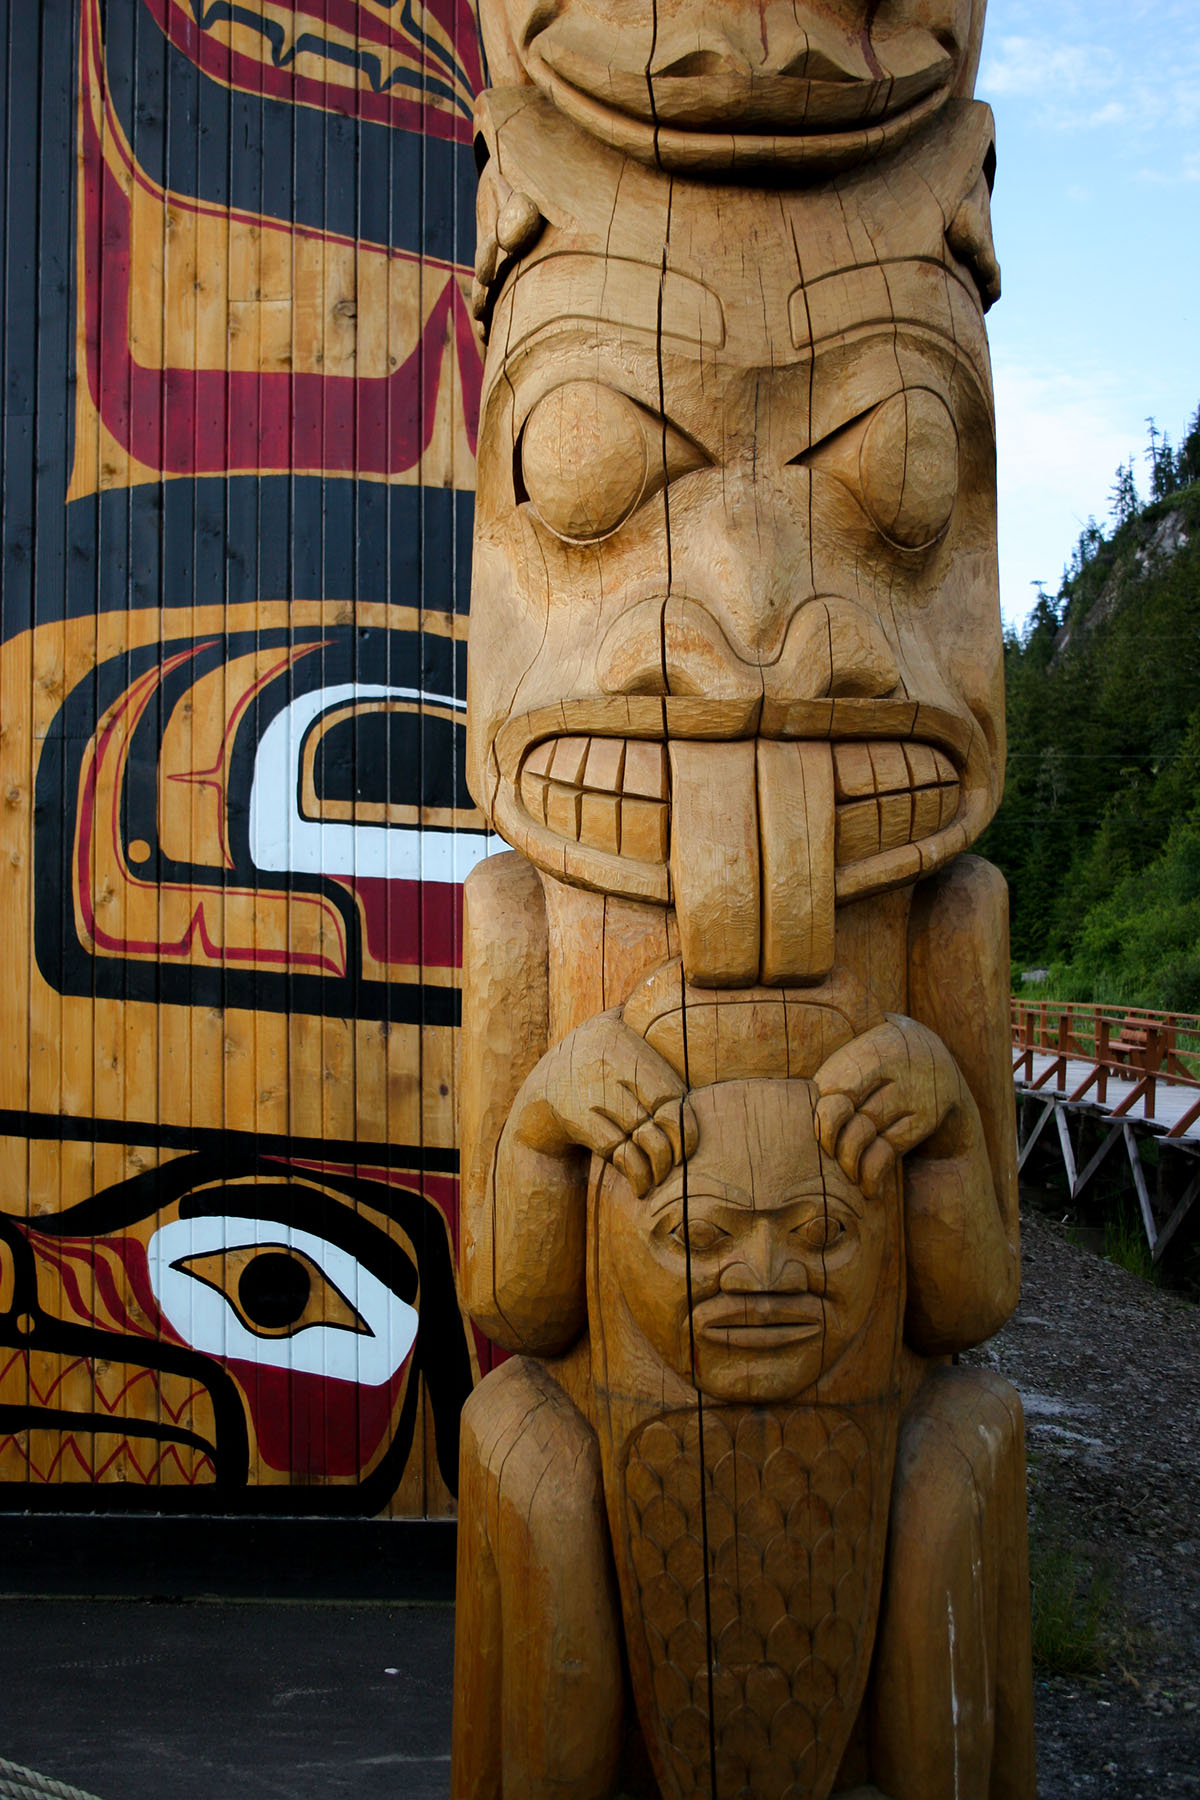 Totem pole and long house in n the village of Gingolx, British Columbia